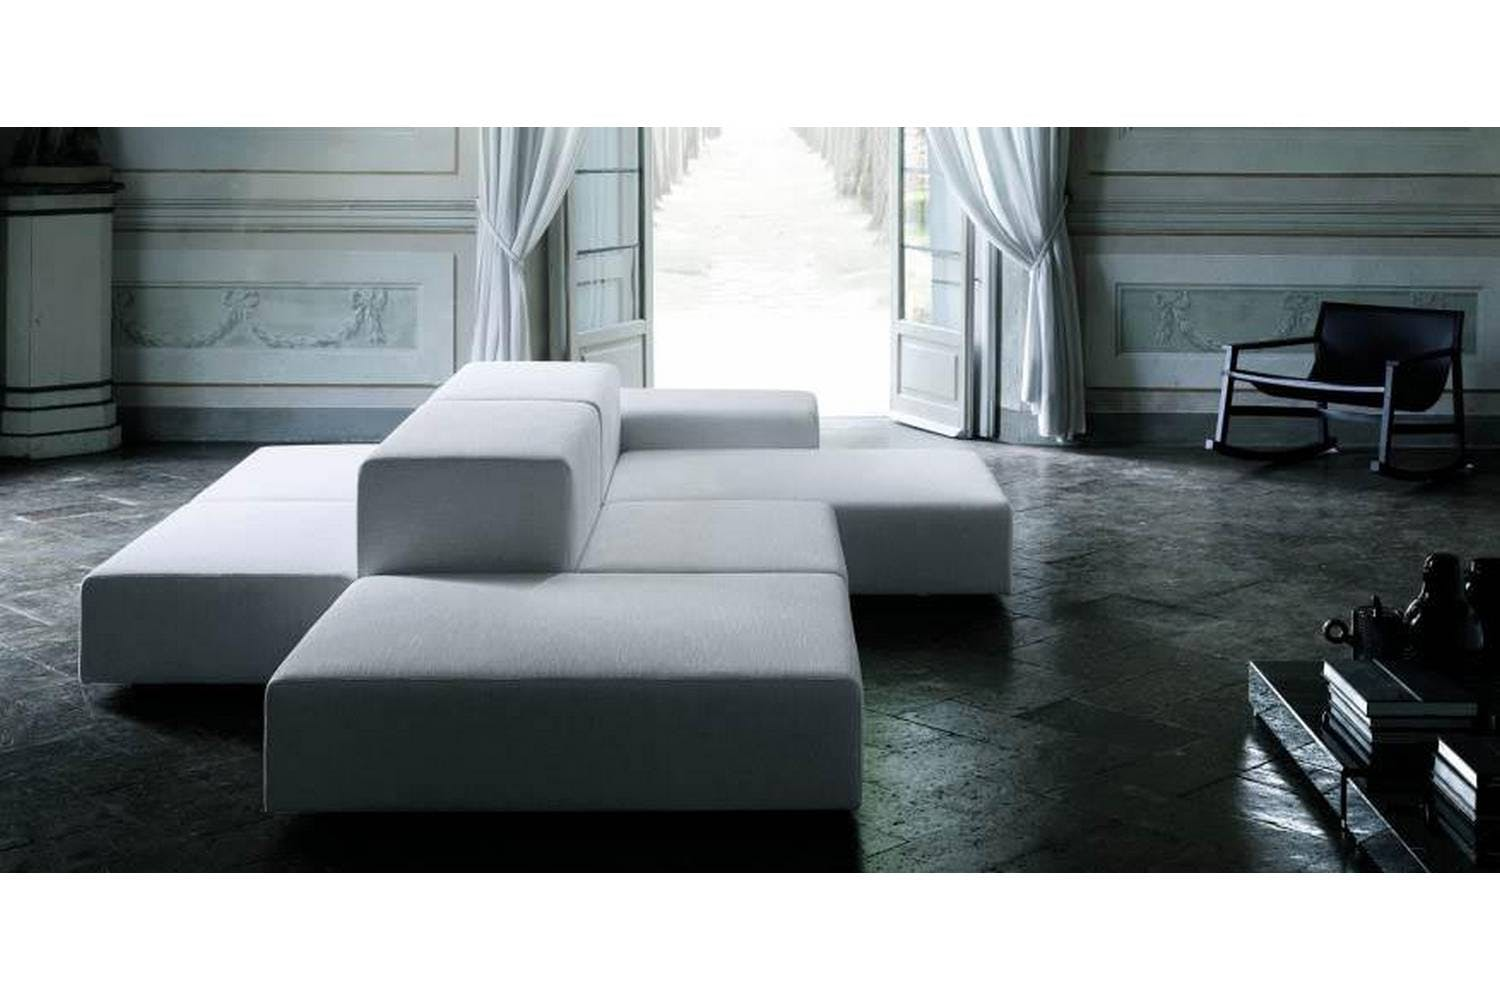 Living Divani Extra Wall.Extra Wall Sofa By Piero Lissoni For Living Divani Space Furniture